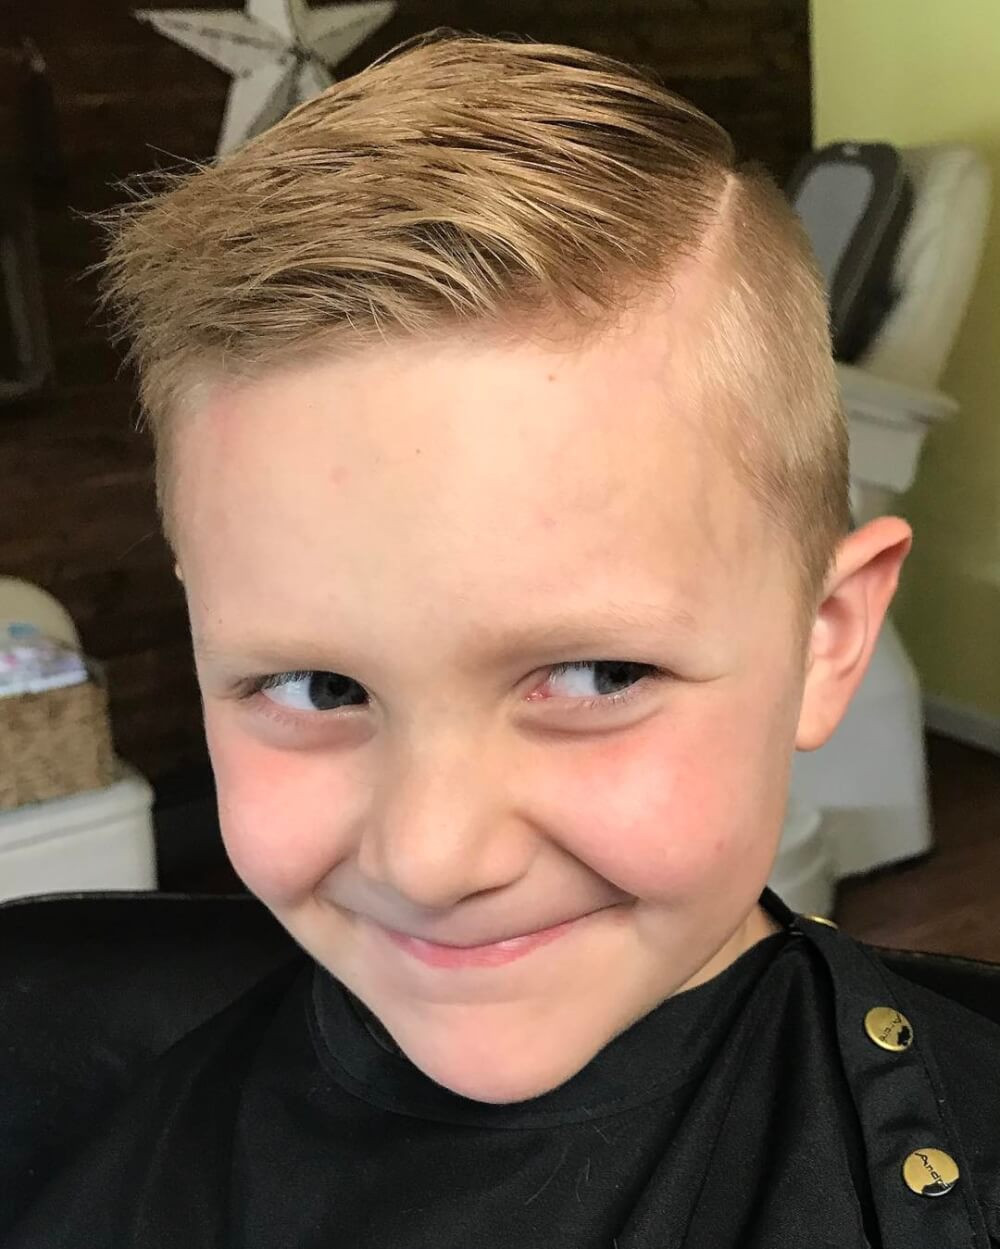 Haircuts For Boys  31 Cutest Boys Haircuts for 2018 Fades Pomps Lines & More